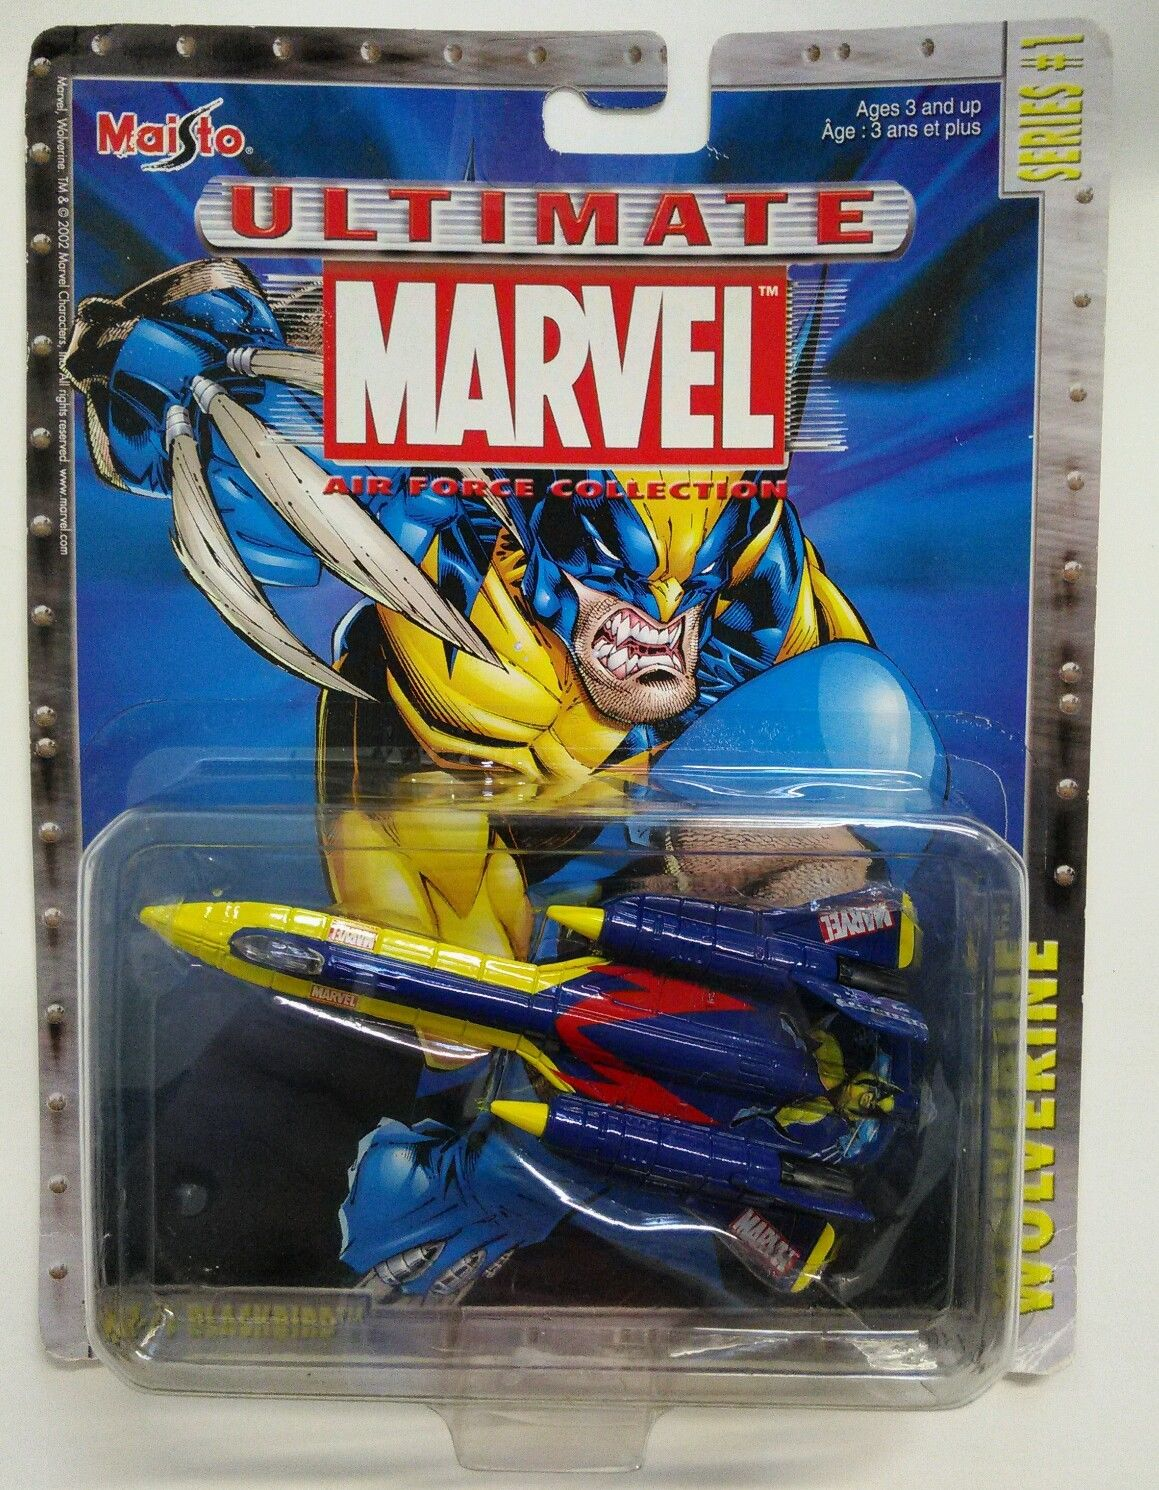 Maisto Ultimate Marvel Die-Cast Wolverine SR-71 Blackbird